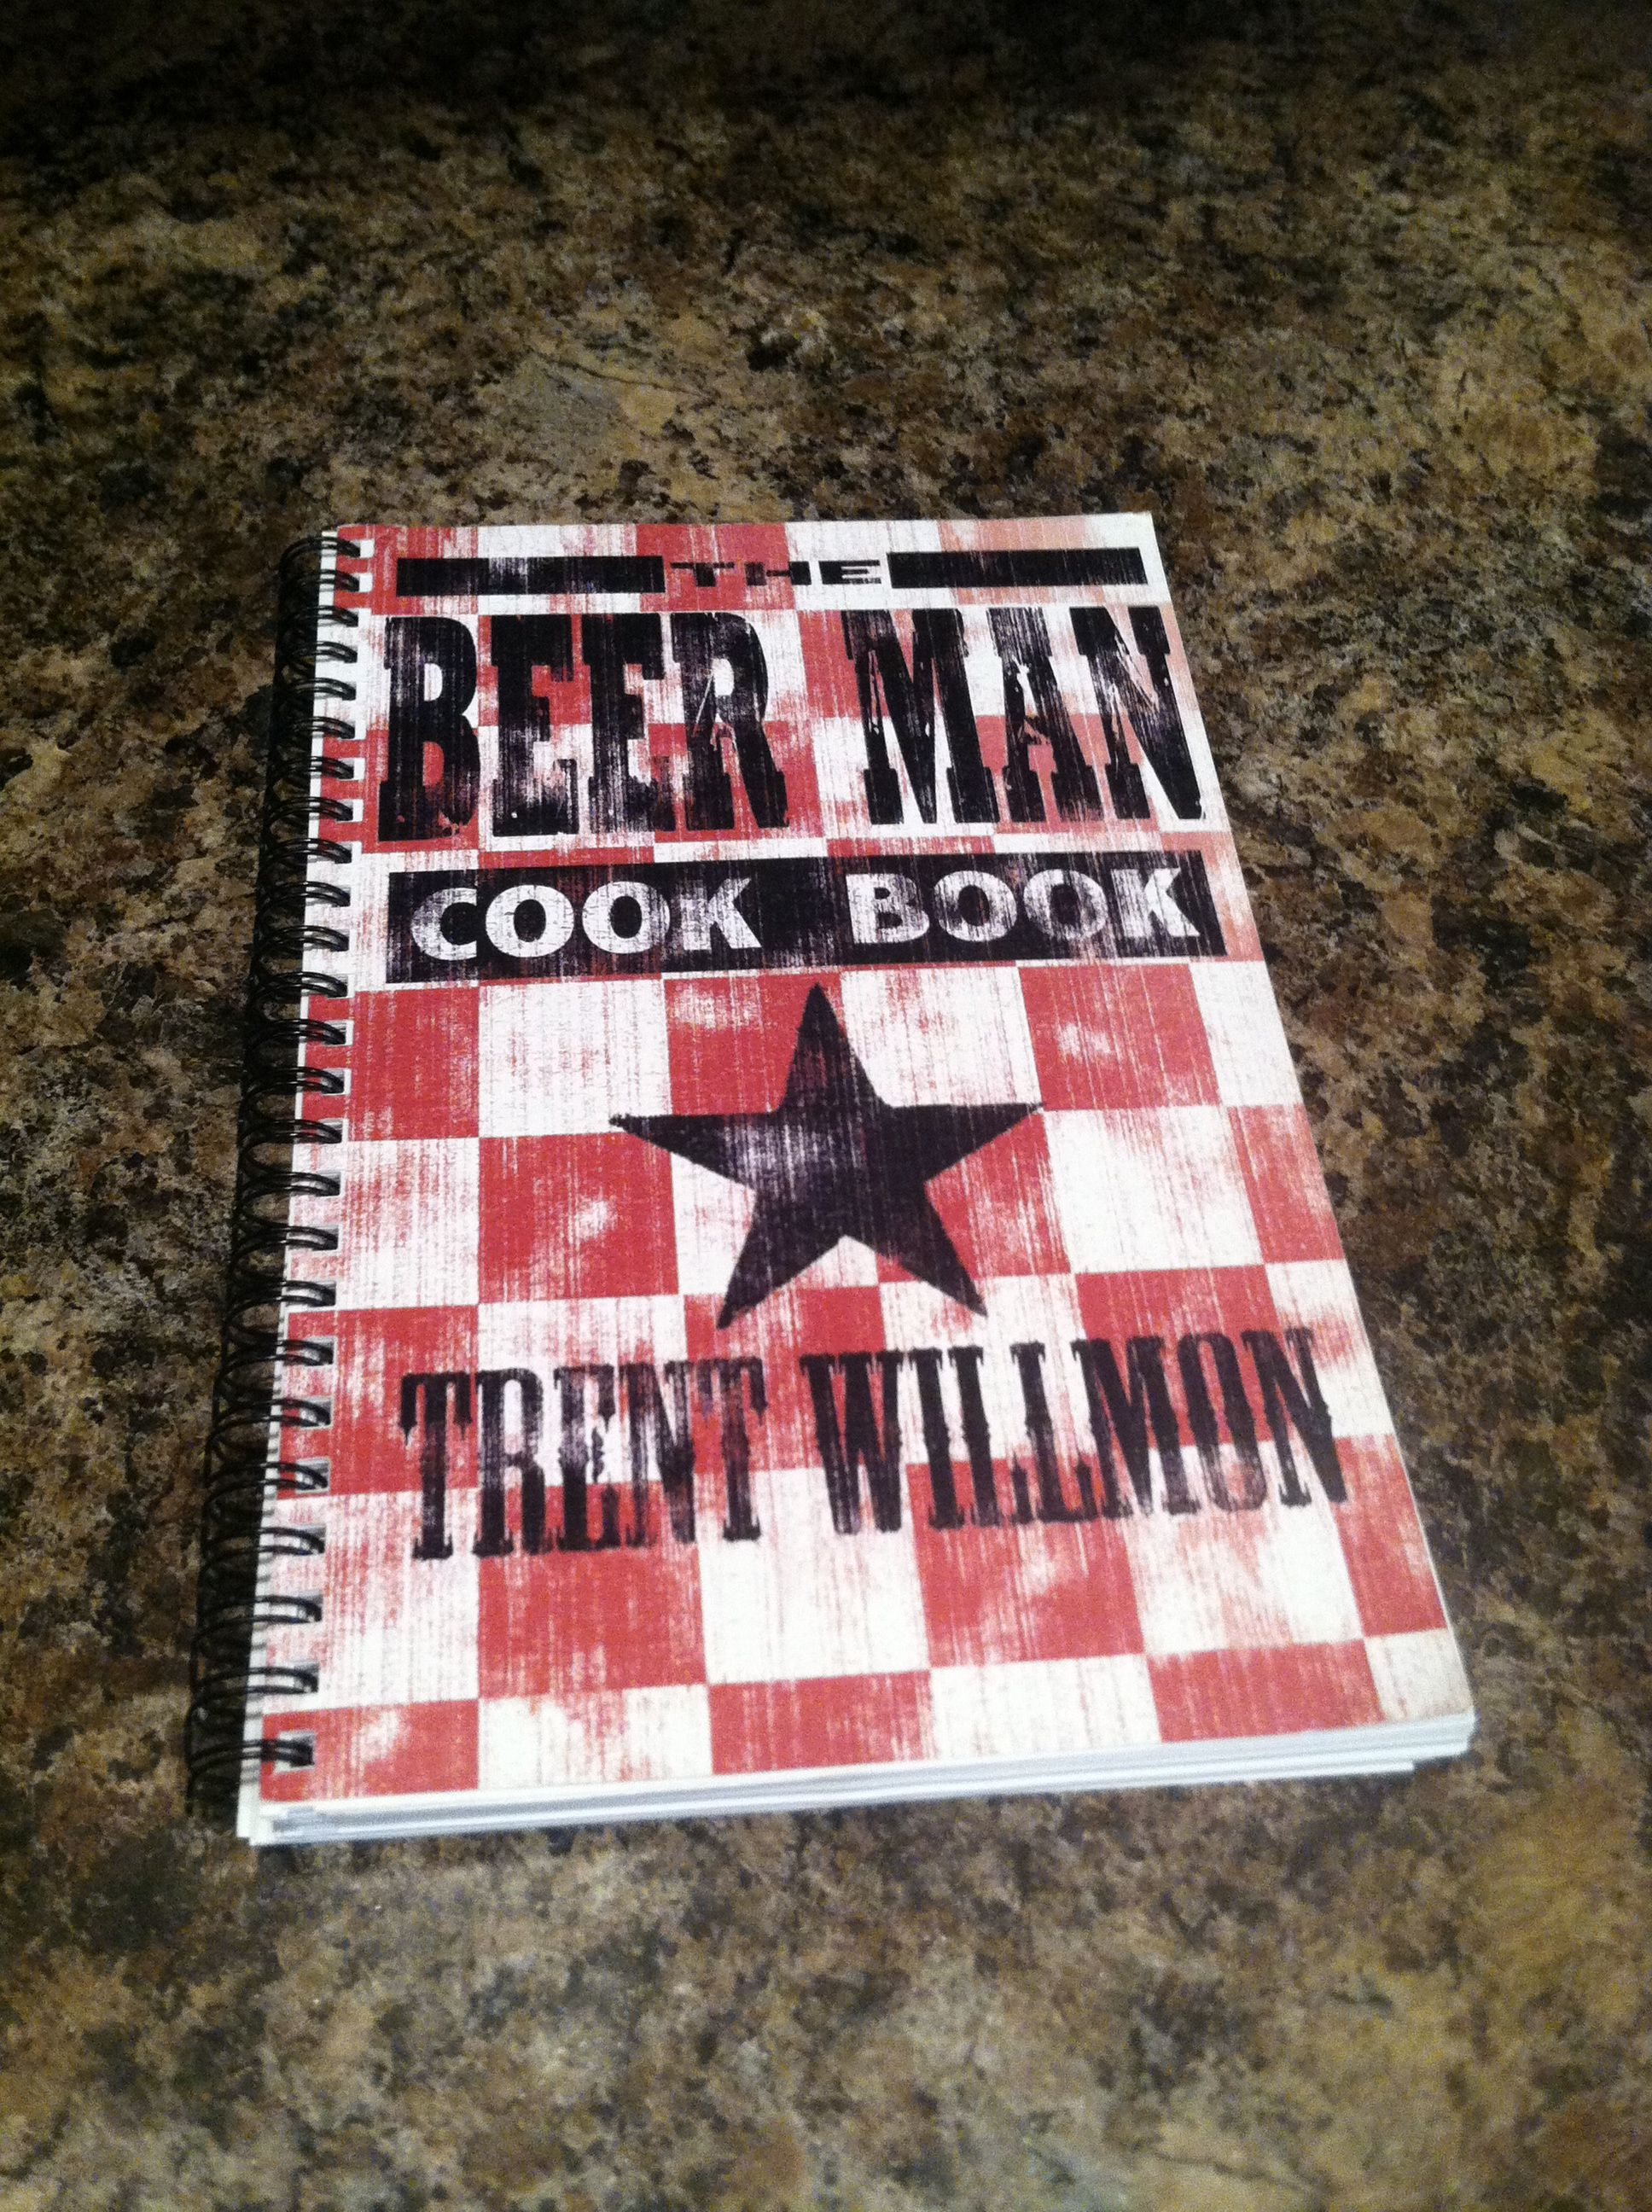 My favorite cookbook. Recipes from Trent Willmon, Eric Church, Luke Bryan... Need I go on? :)